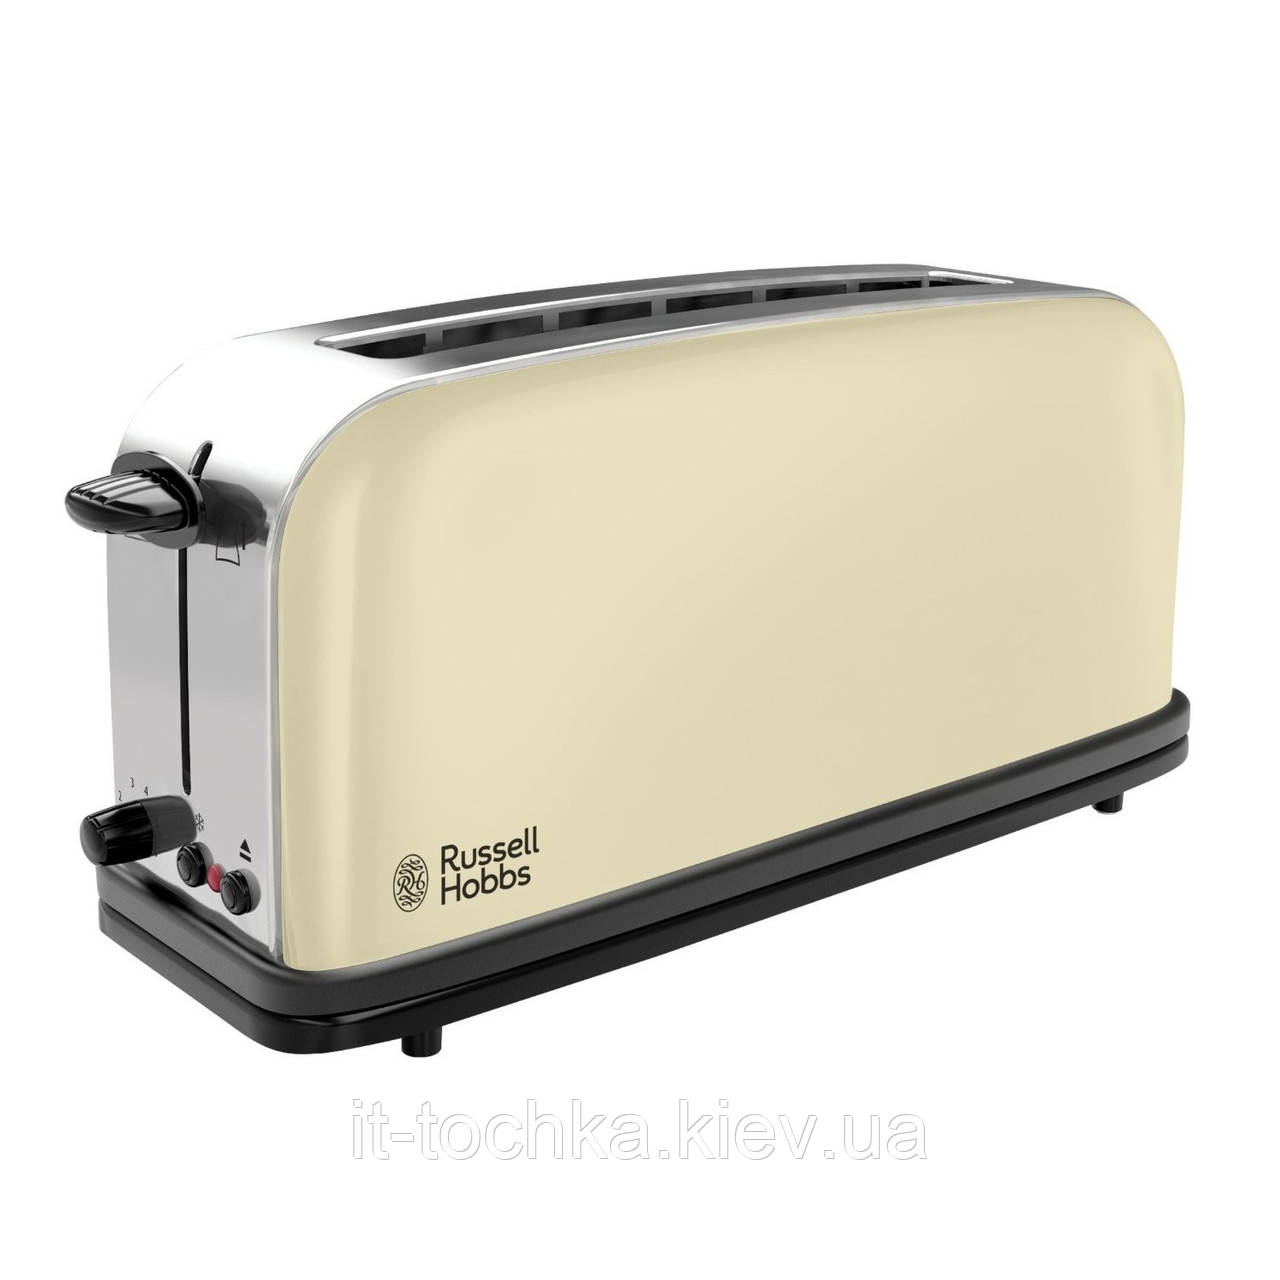 Russell hobbs long slot toasters european roulette game fun